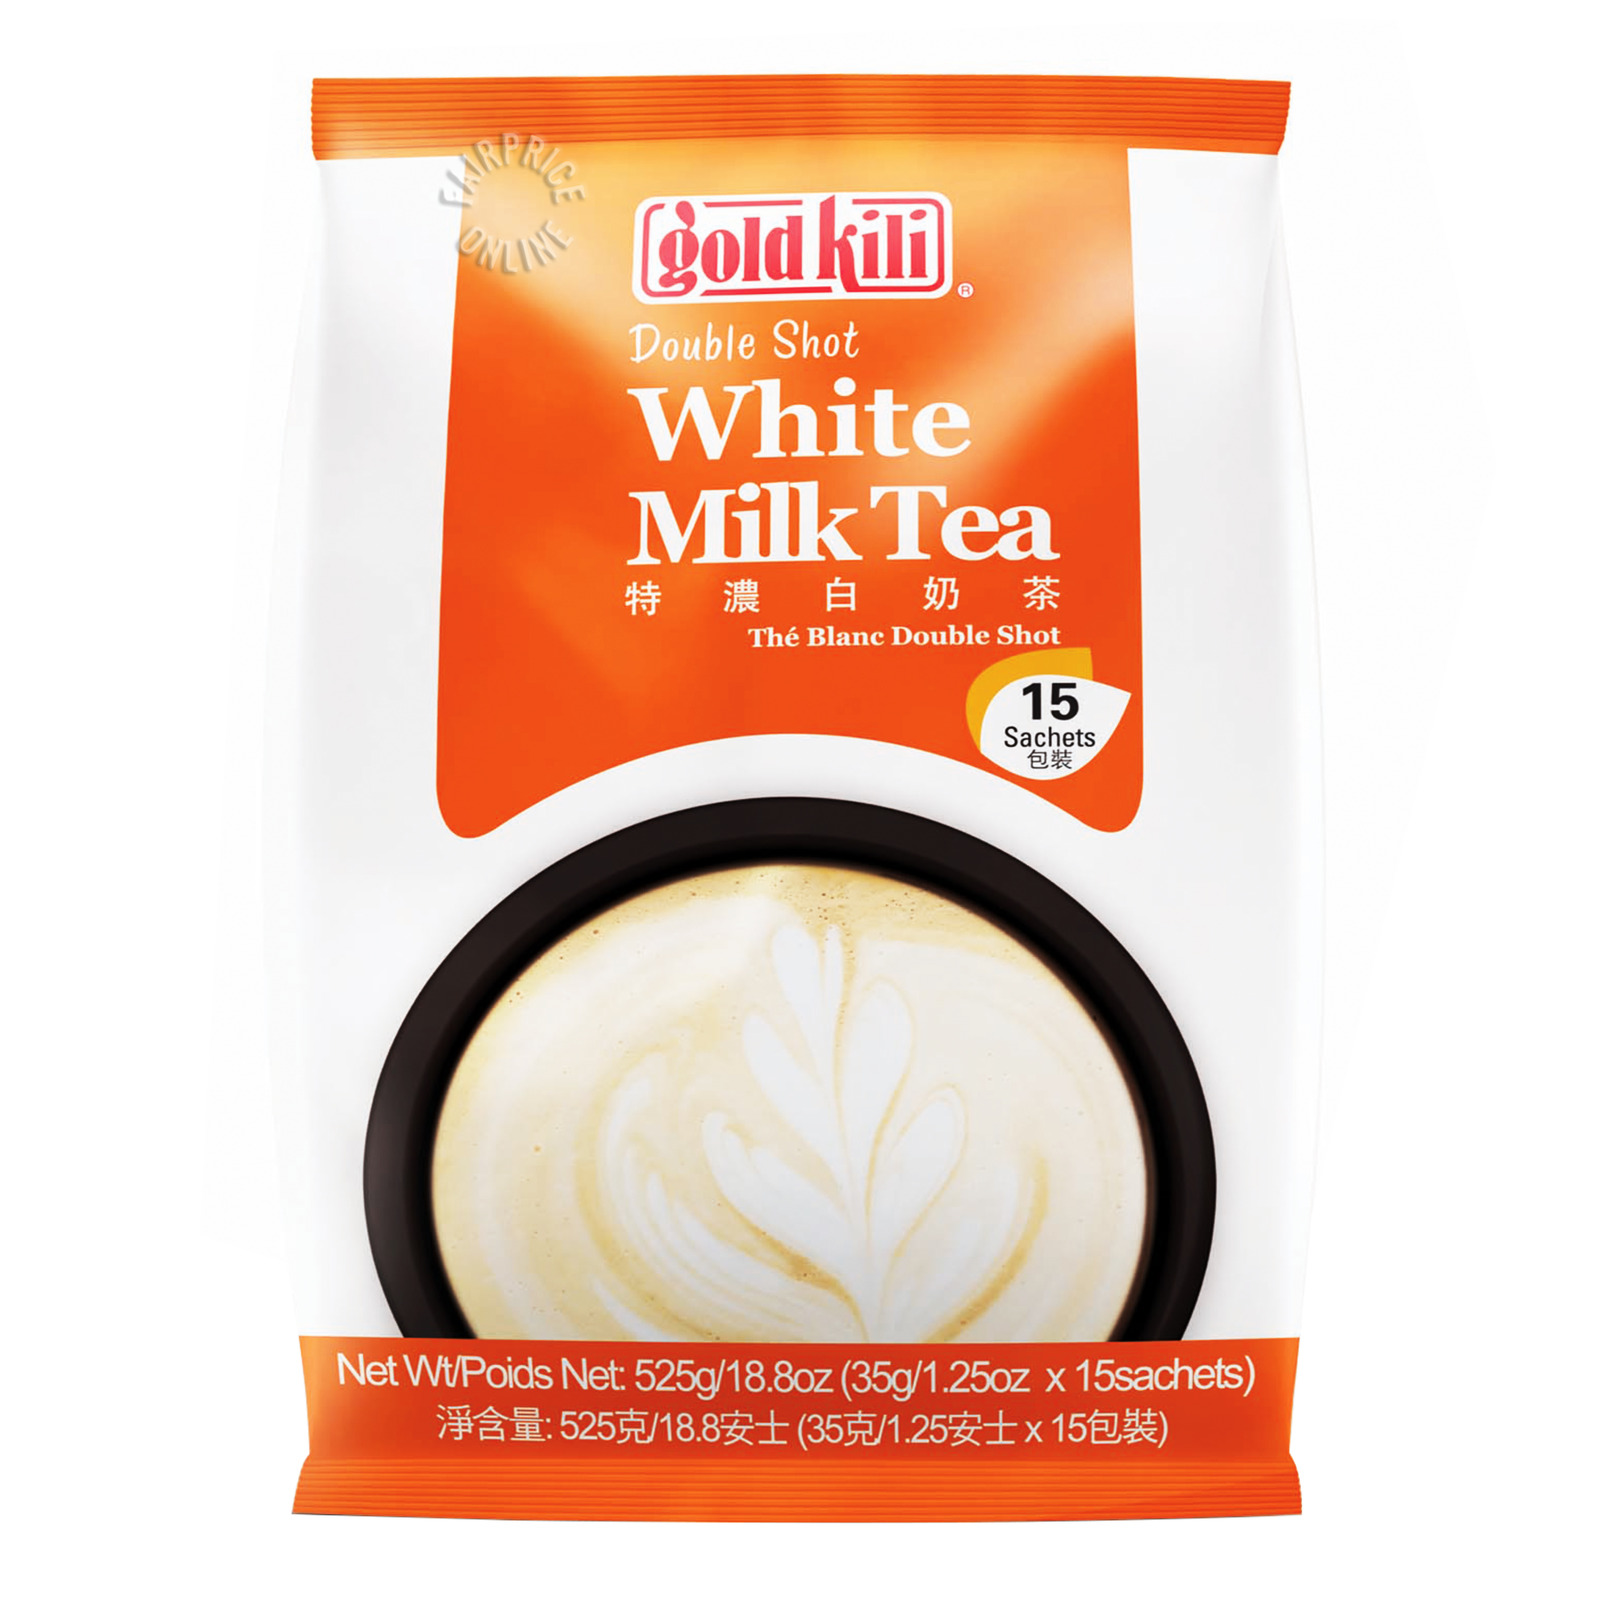 #Gold Kili Premium Instant White Milk Tea - Double Shot